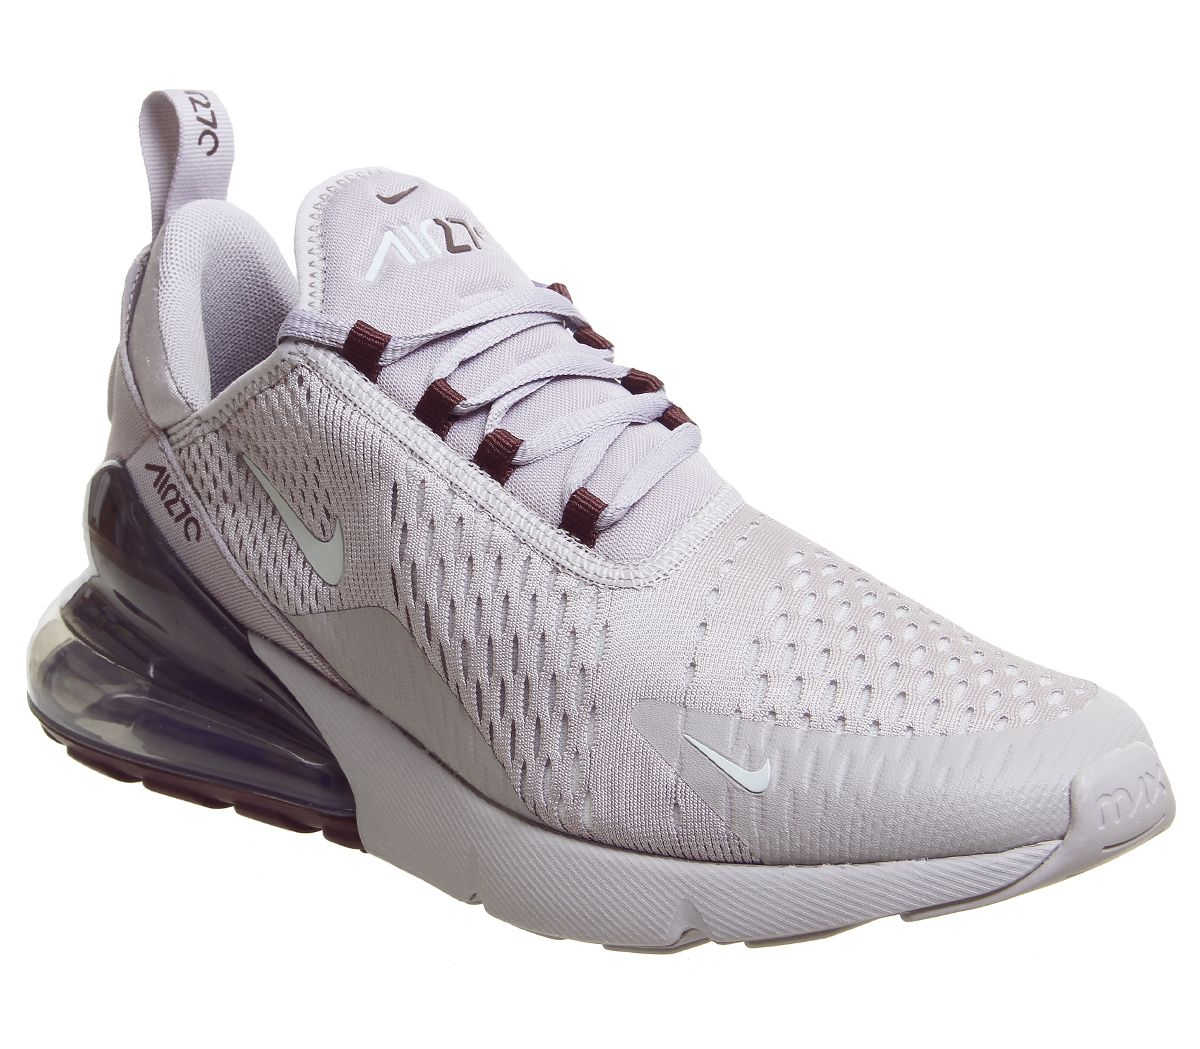 7245ca579787d Nike Air Max 270 Trainers Atmosphere Grey Silver Burgundy Crush ...